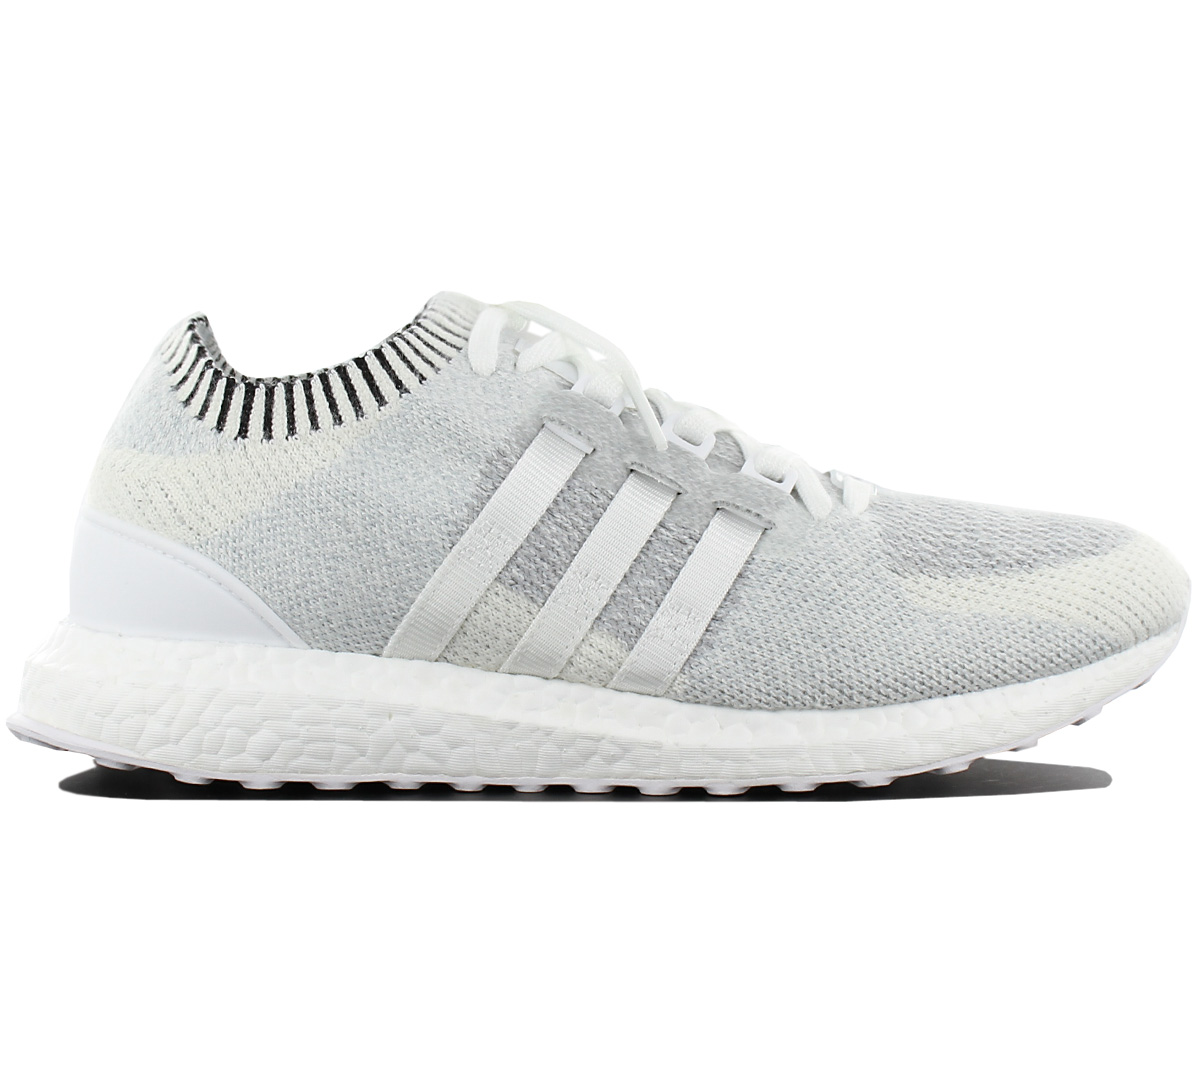 new style 65137 9c8c7 Details about Adidas Originals Eqt Equipment Support Ultra Pk Primeknit  Men's Shoes BB1242